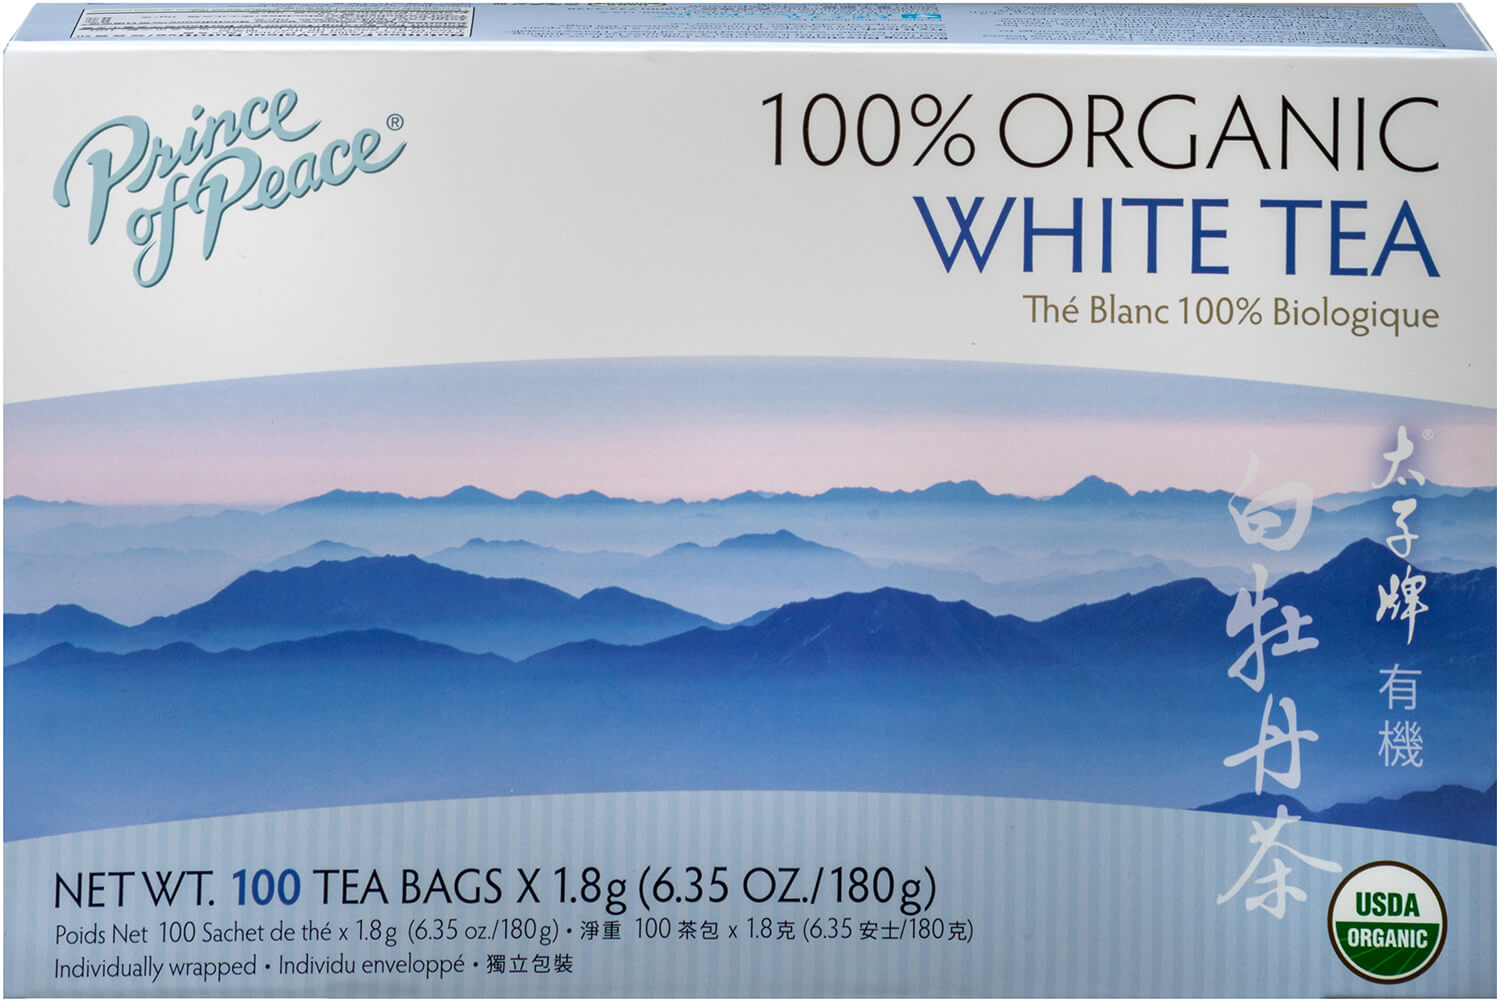 100% Organic White Tea Thumbnail Alternate Bottle View